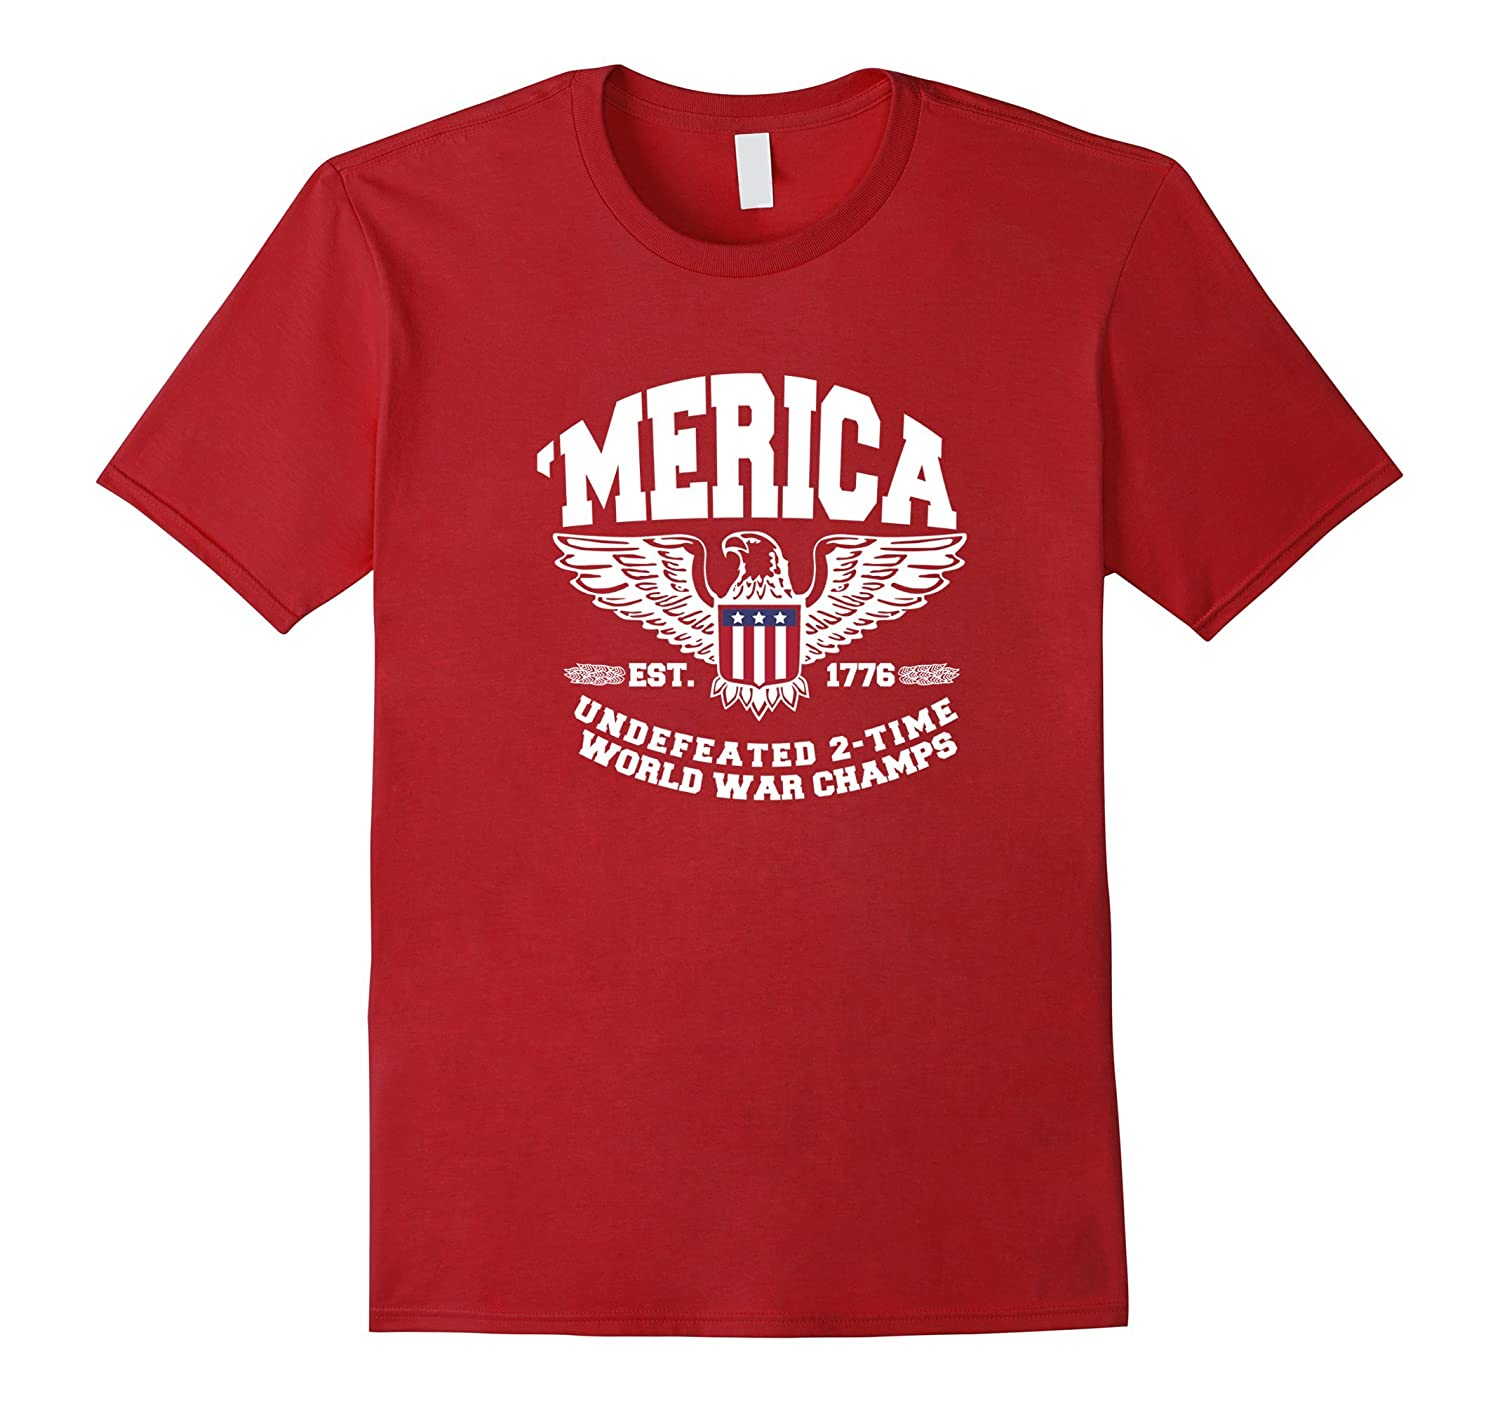 108ecd5e America Est. 1776 Undefeated 2-Time World War Champs T-Shirt-TH ...